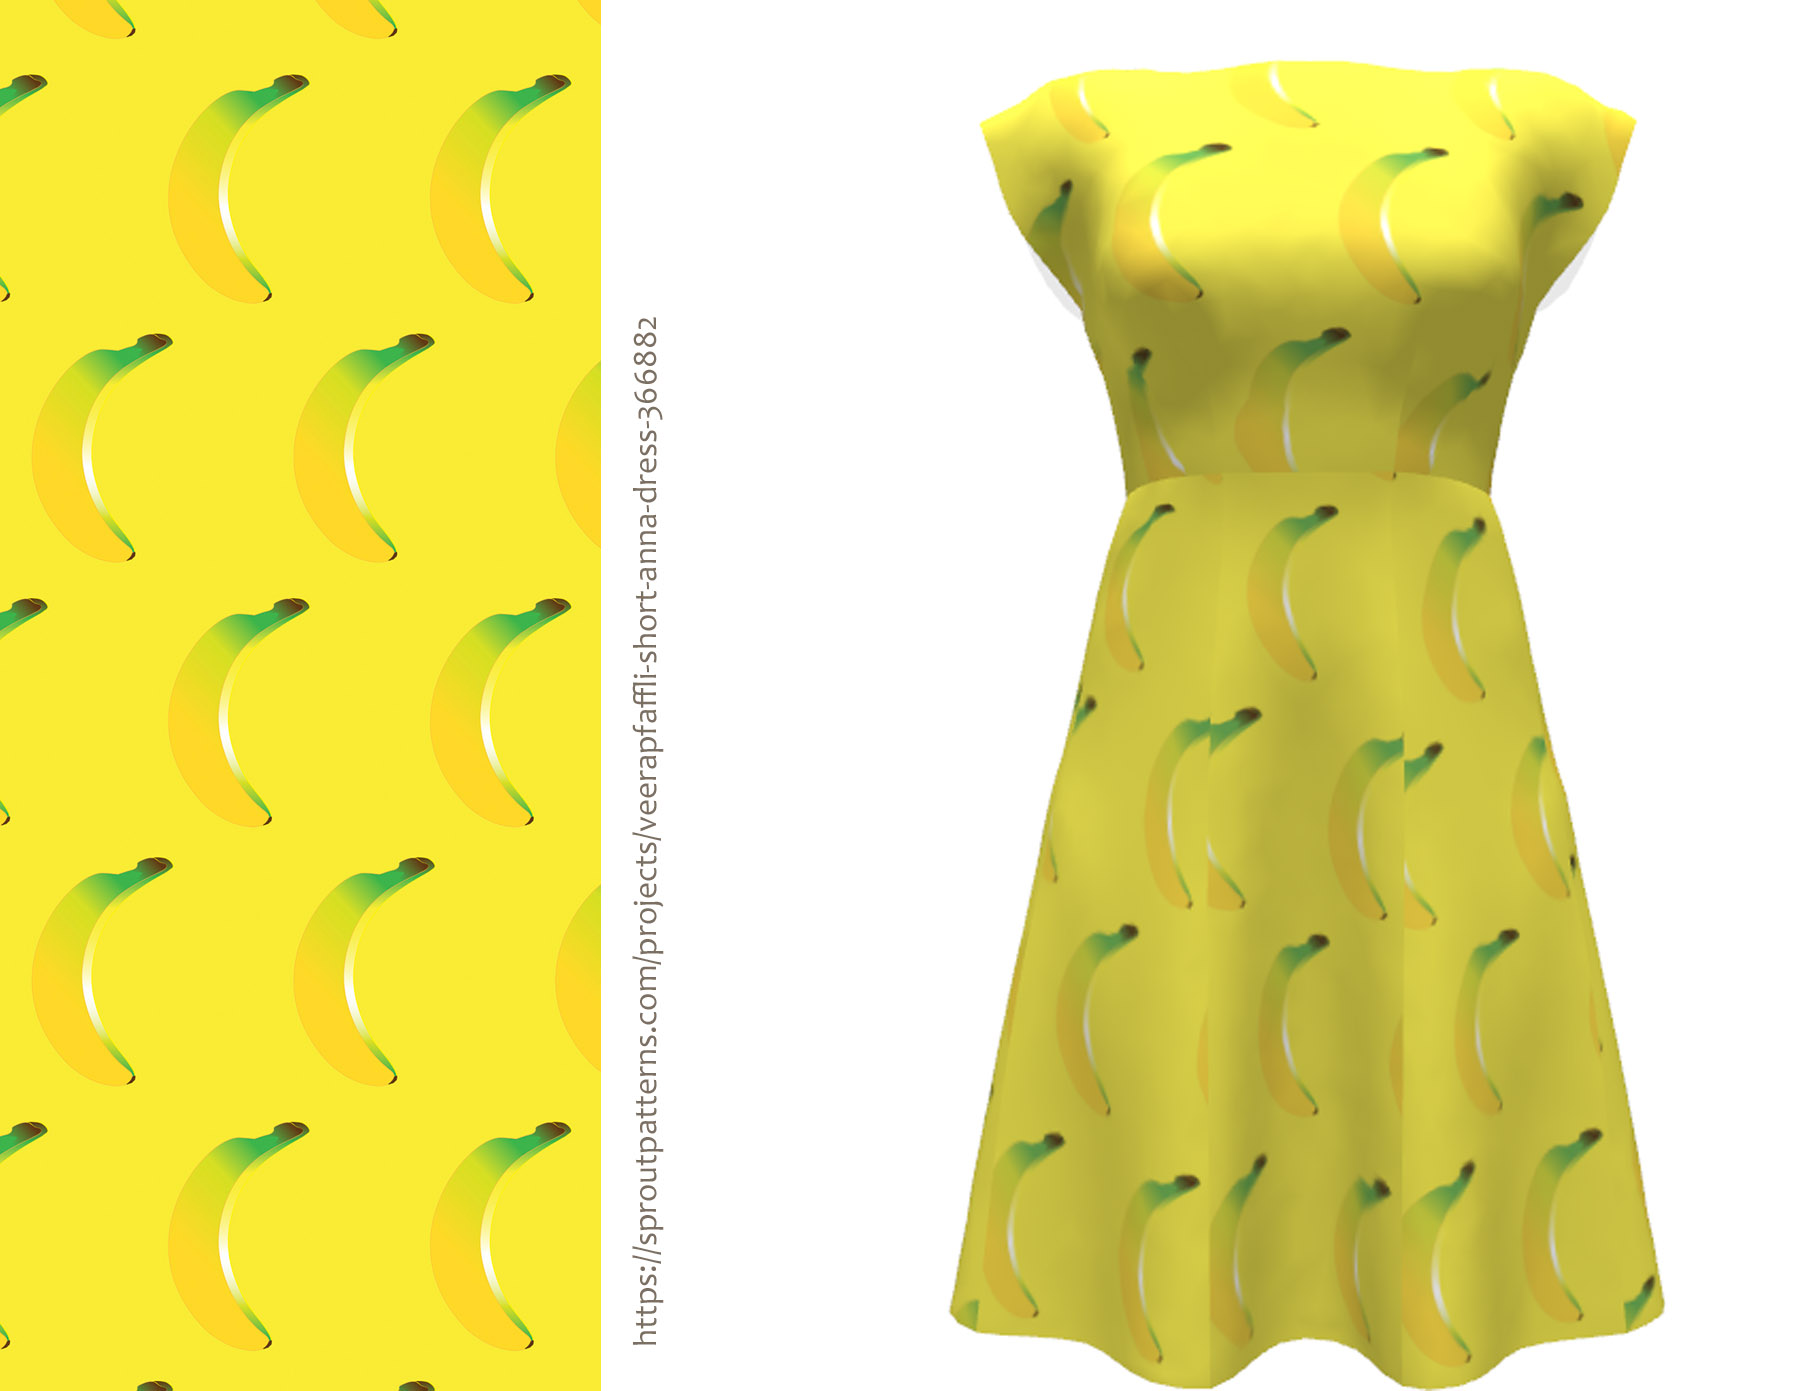 Anna dress on Sprout patterns goes bananas